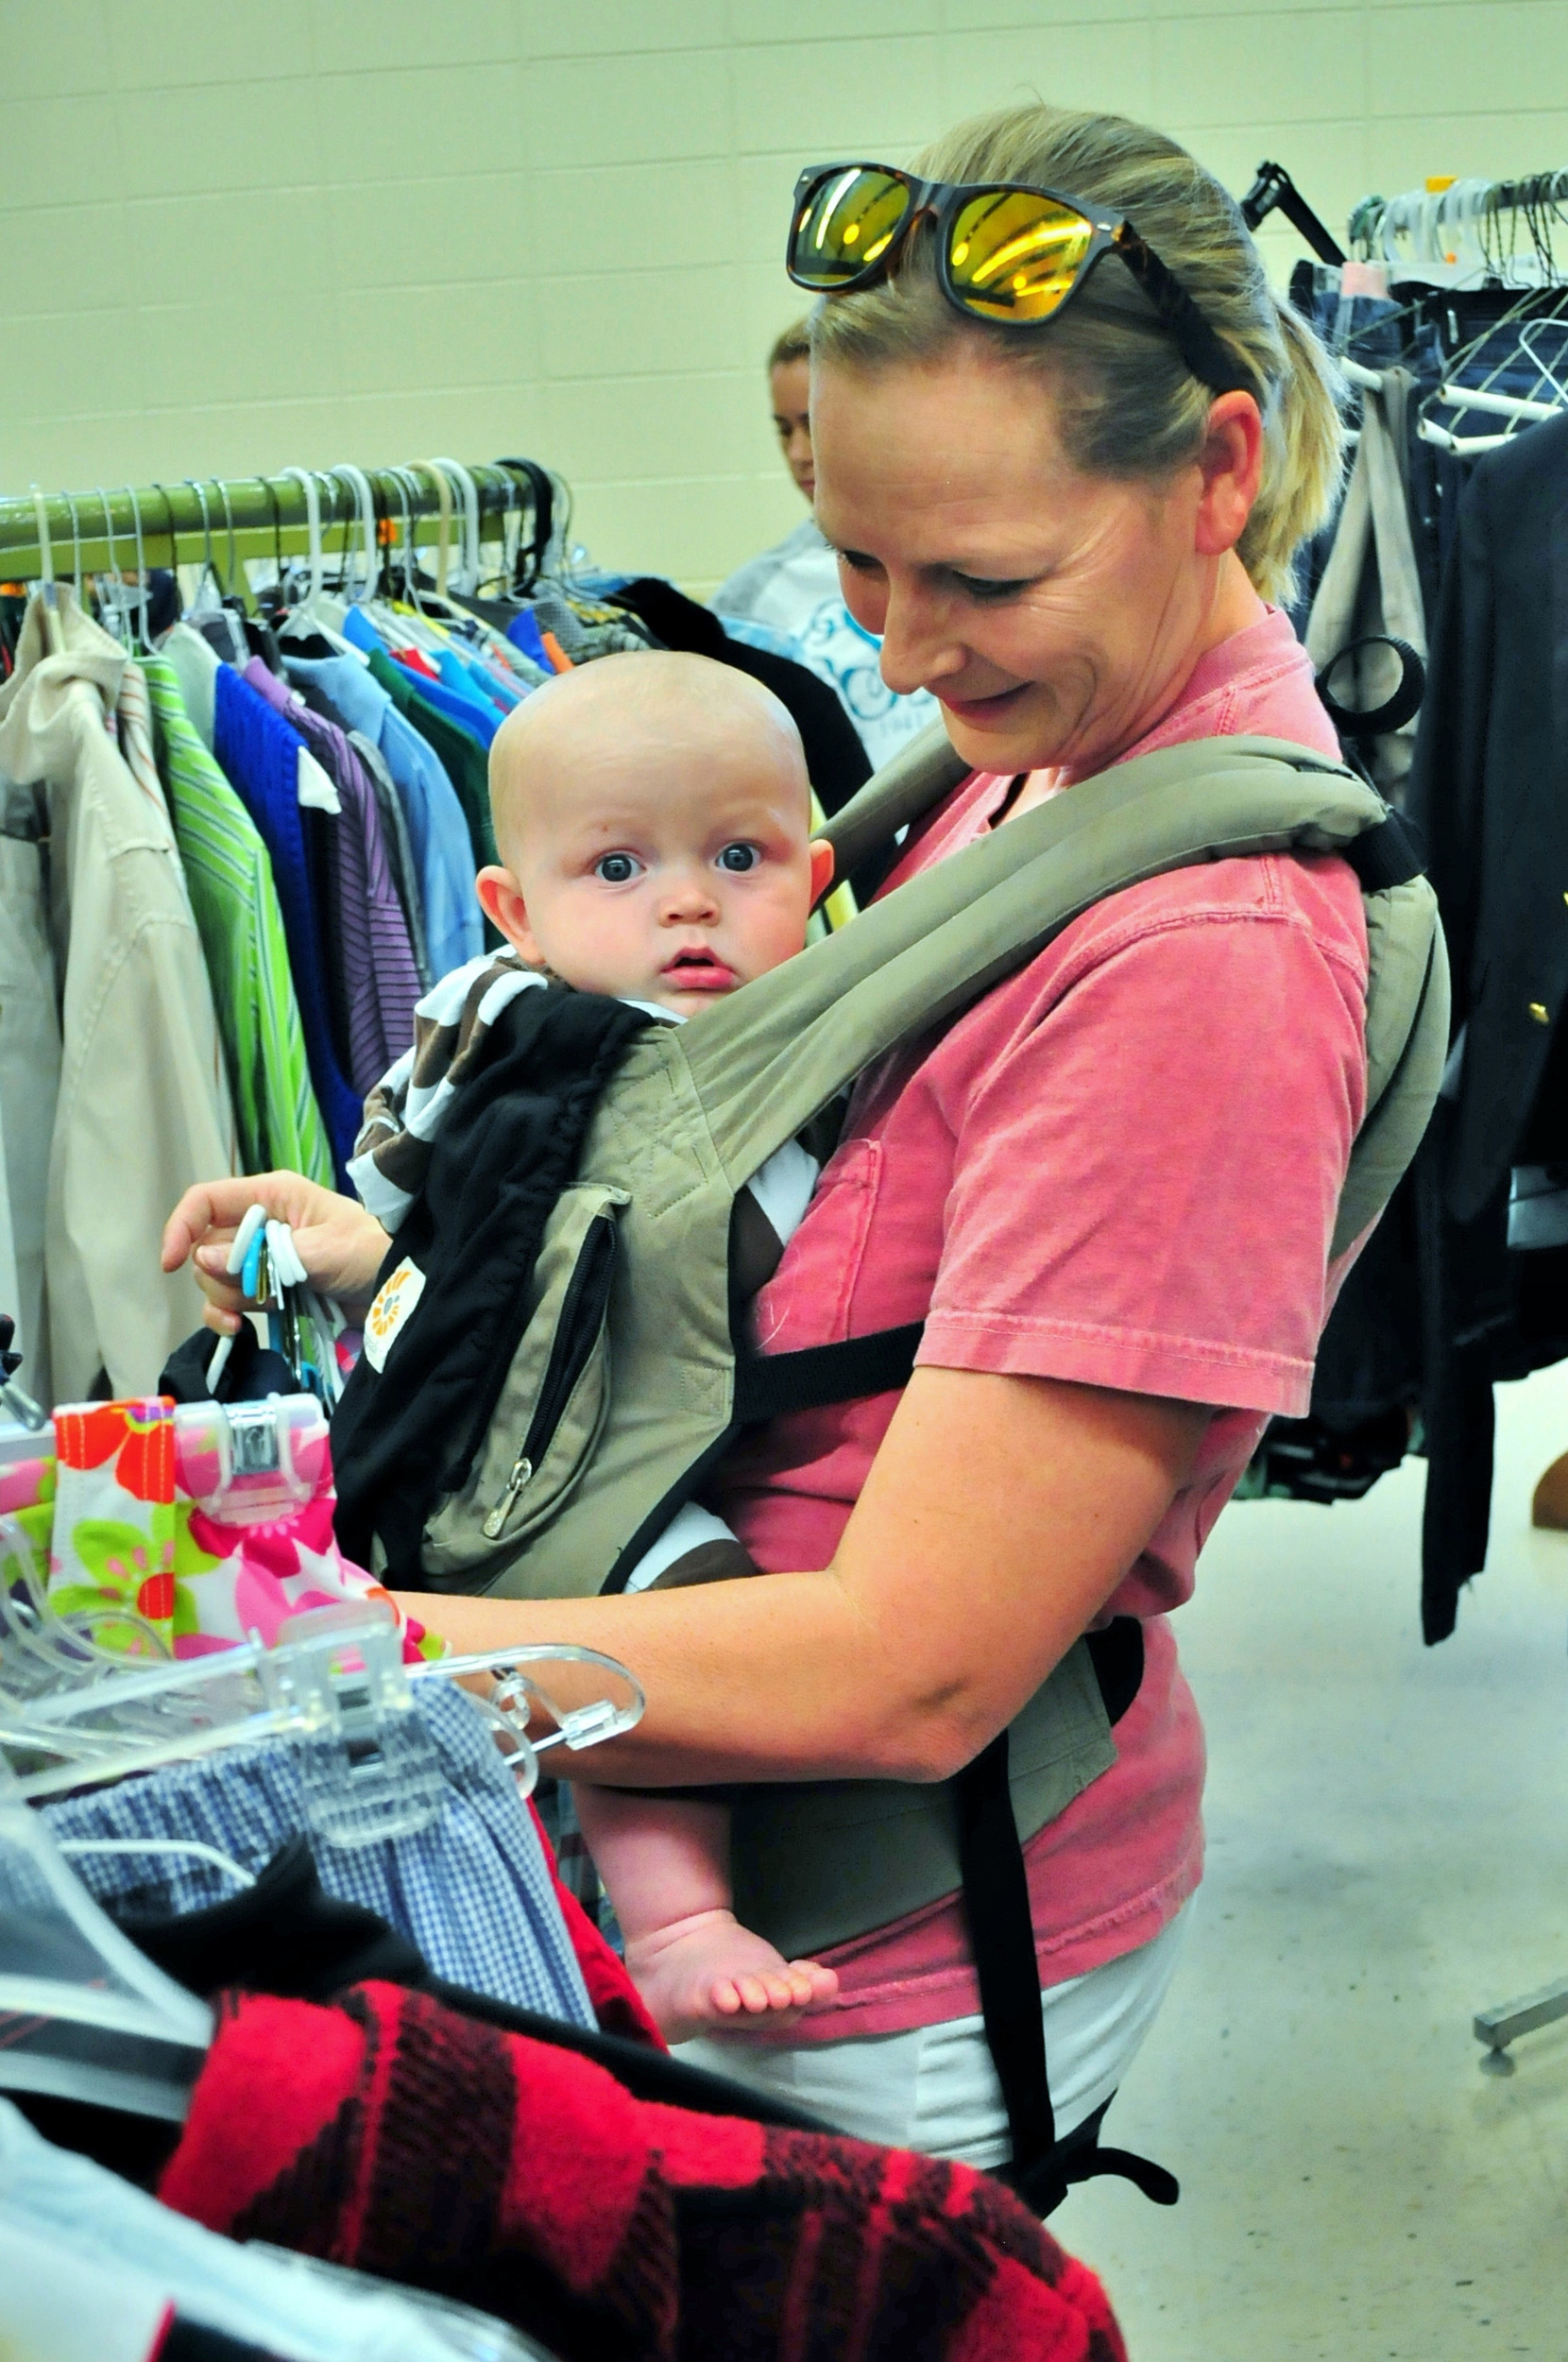 As 7-month-old Beckett waits patiently, Lauren Startup looks through items at the Cartersville Service League's Rummage Sale last year.